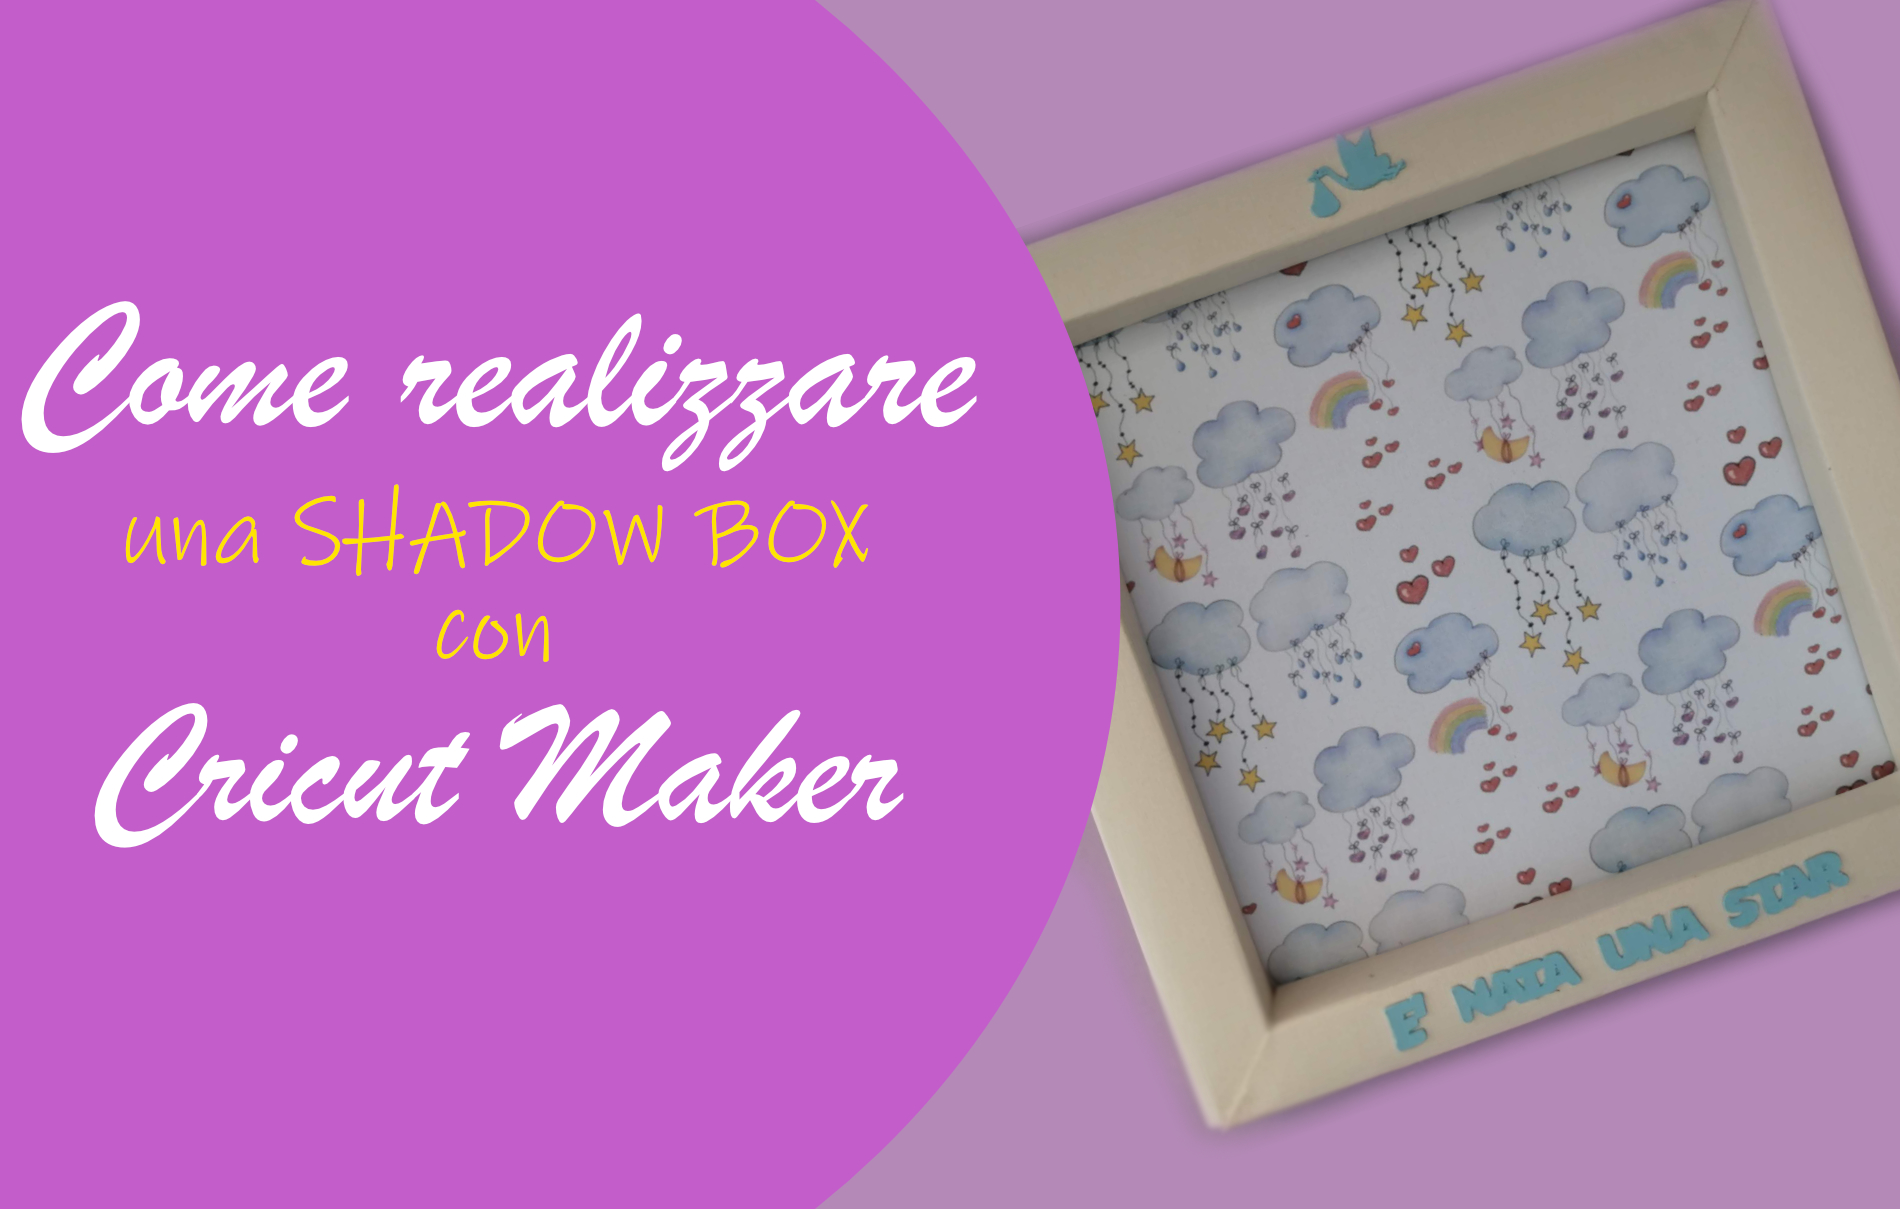 Come realizzare una shadow box con Cricut Maker